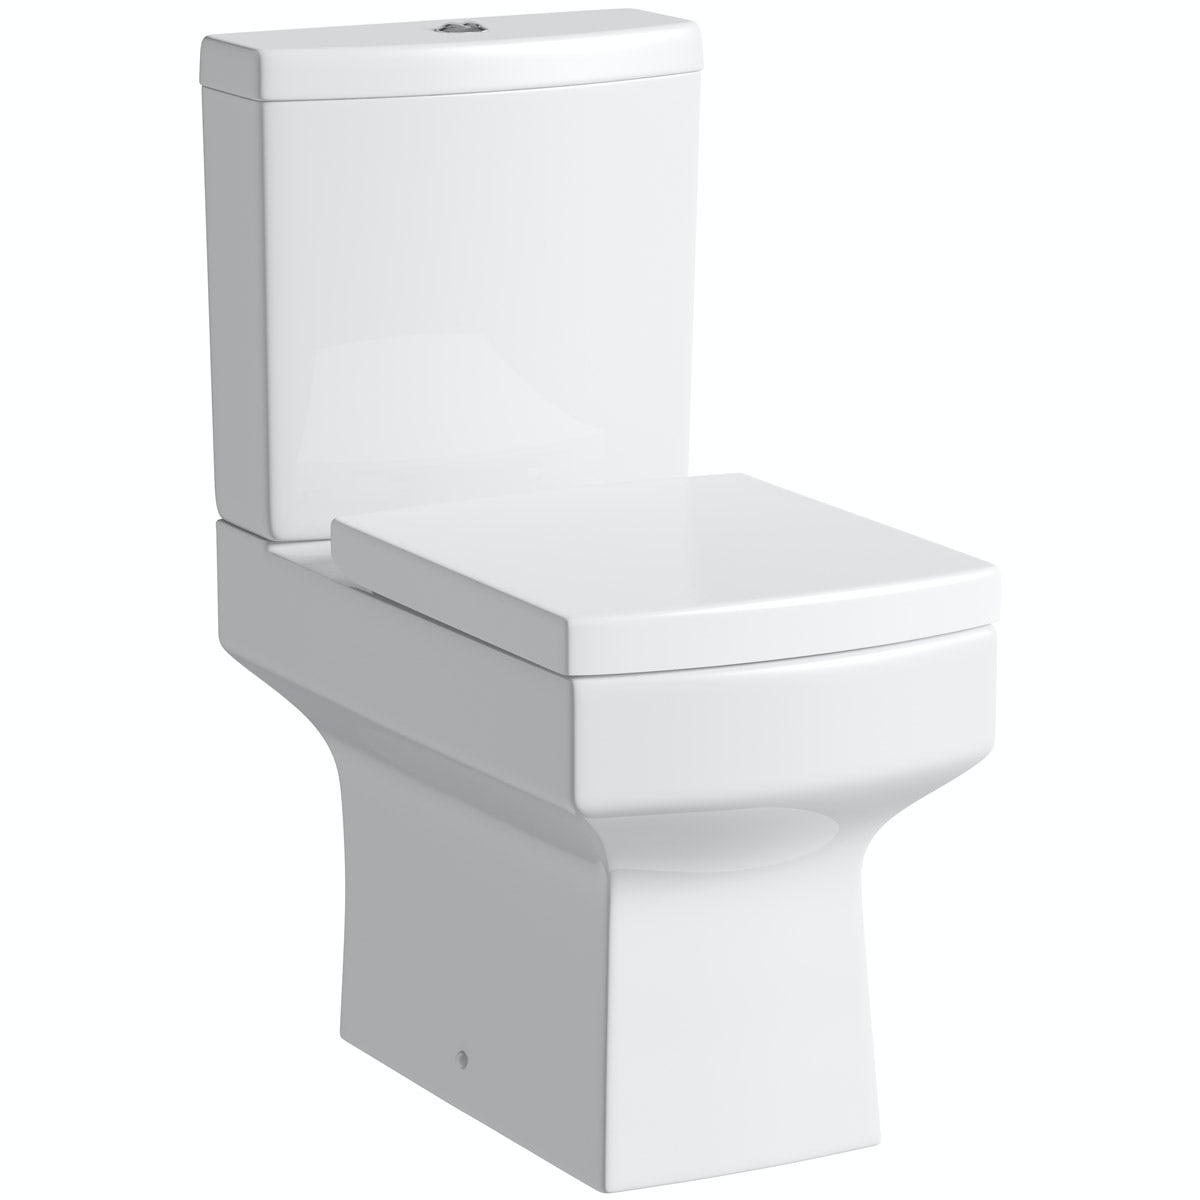 Orchard Wye Close Coupled Toilet And Soft Close Toilet